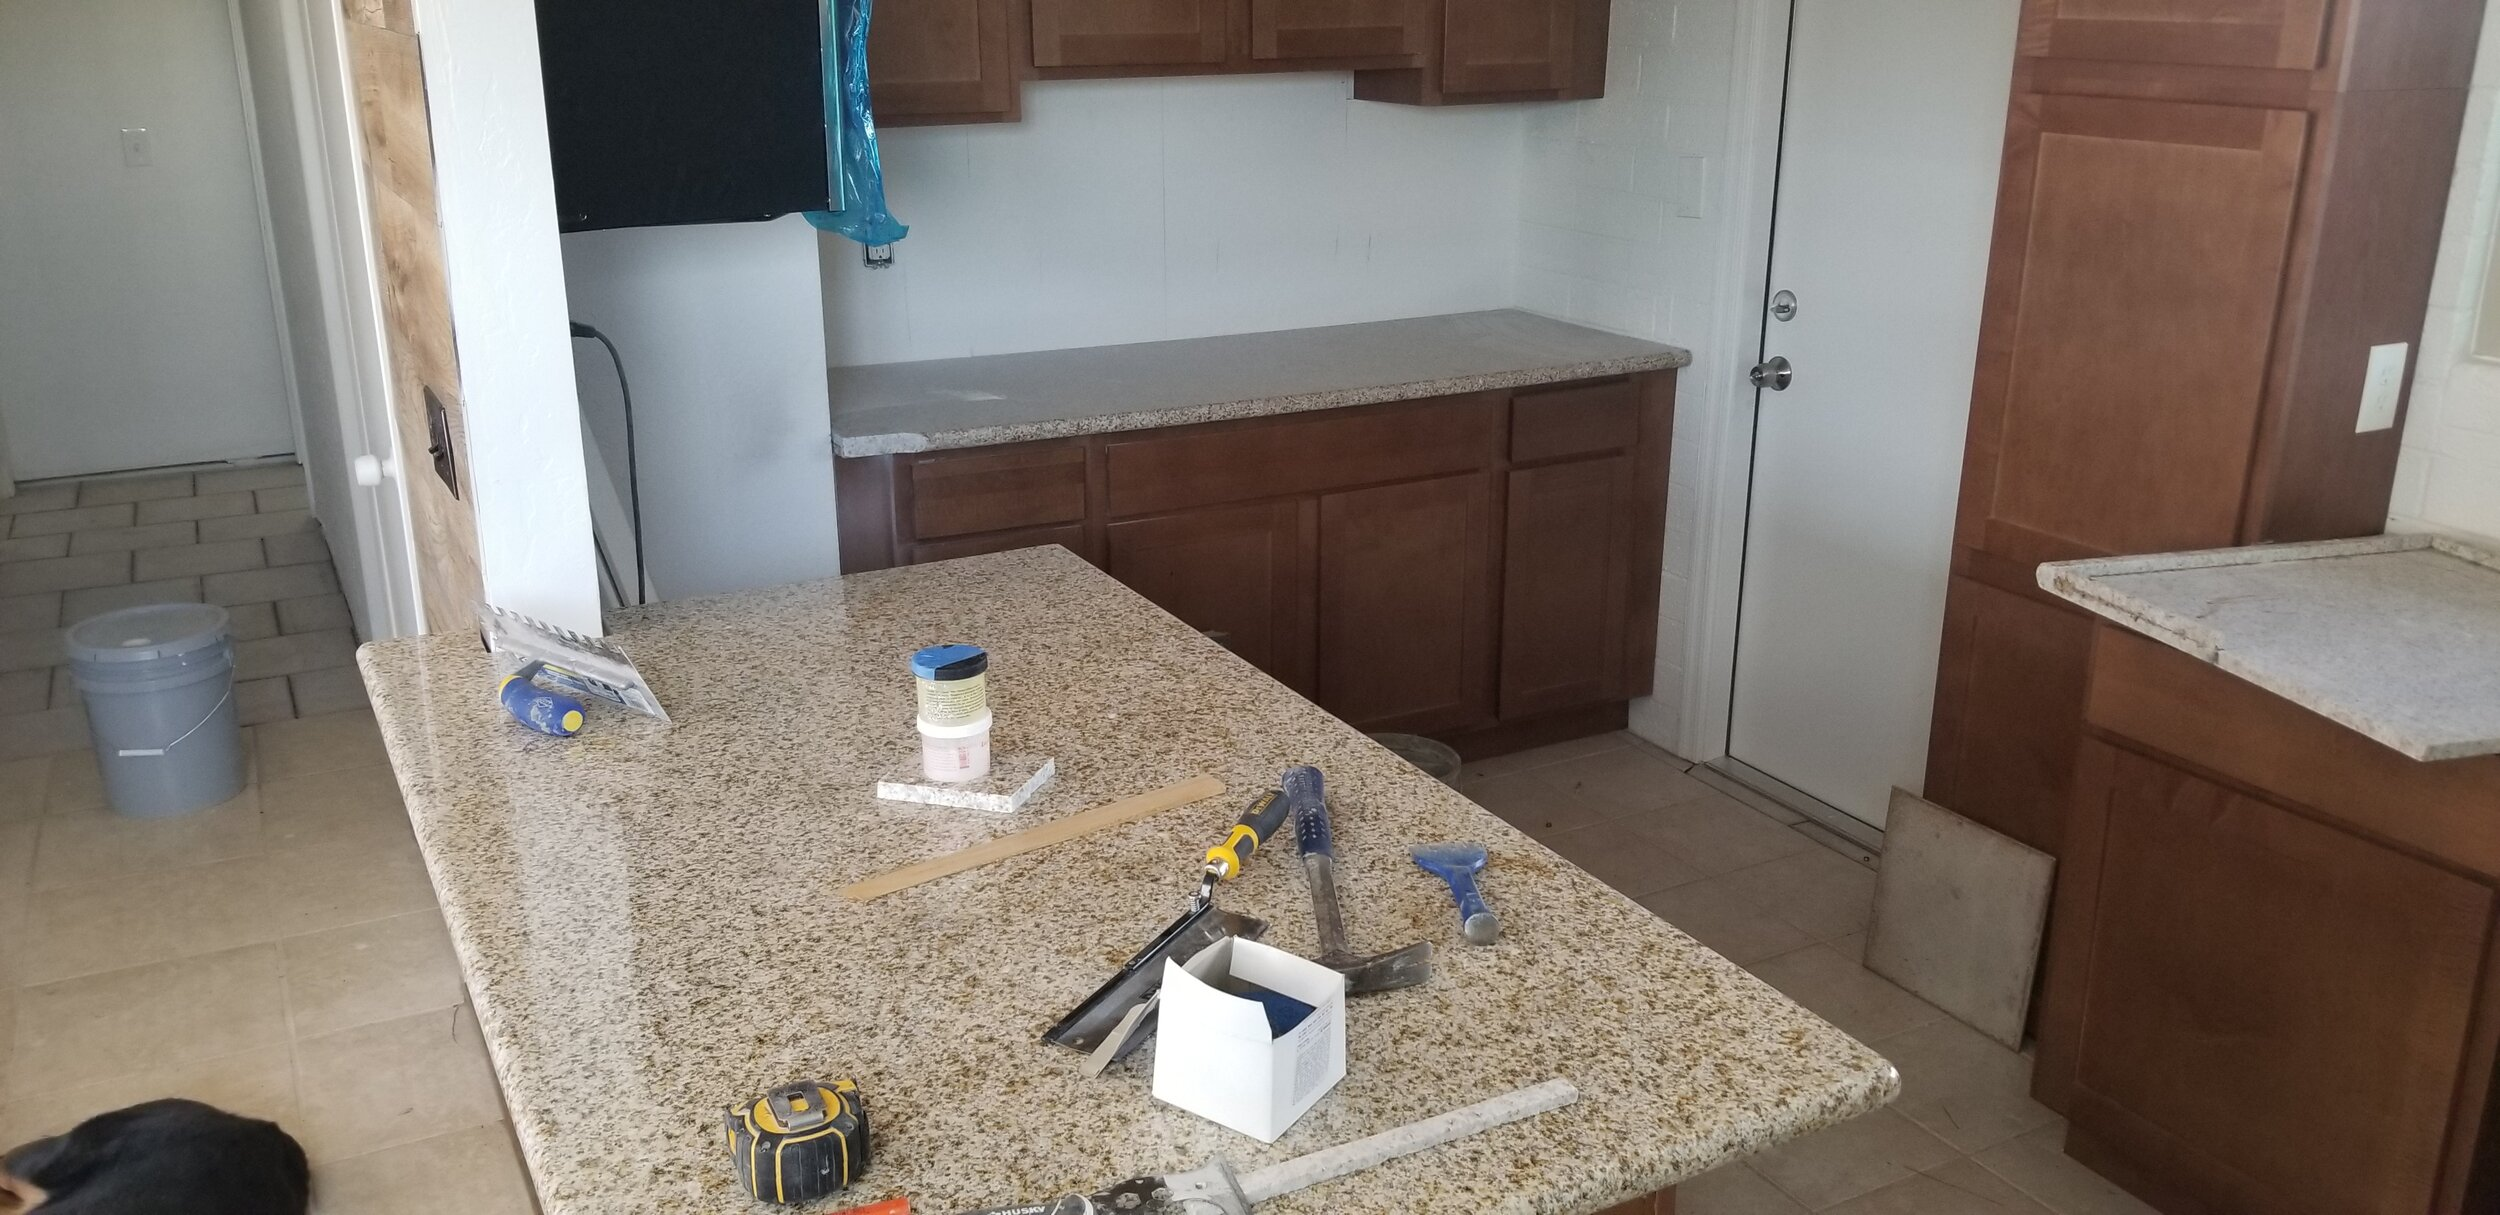 Kitchen cabinets & Granite counters installed